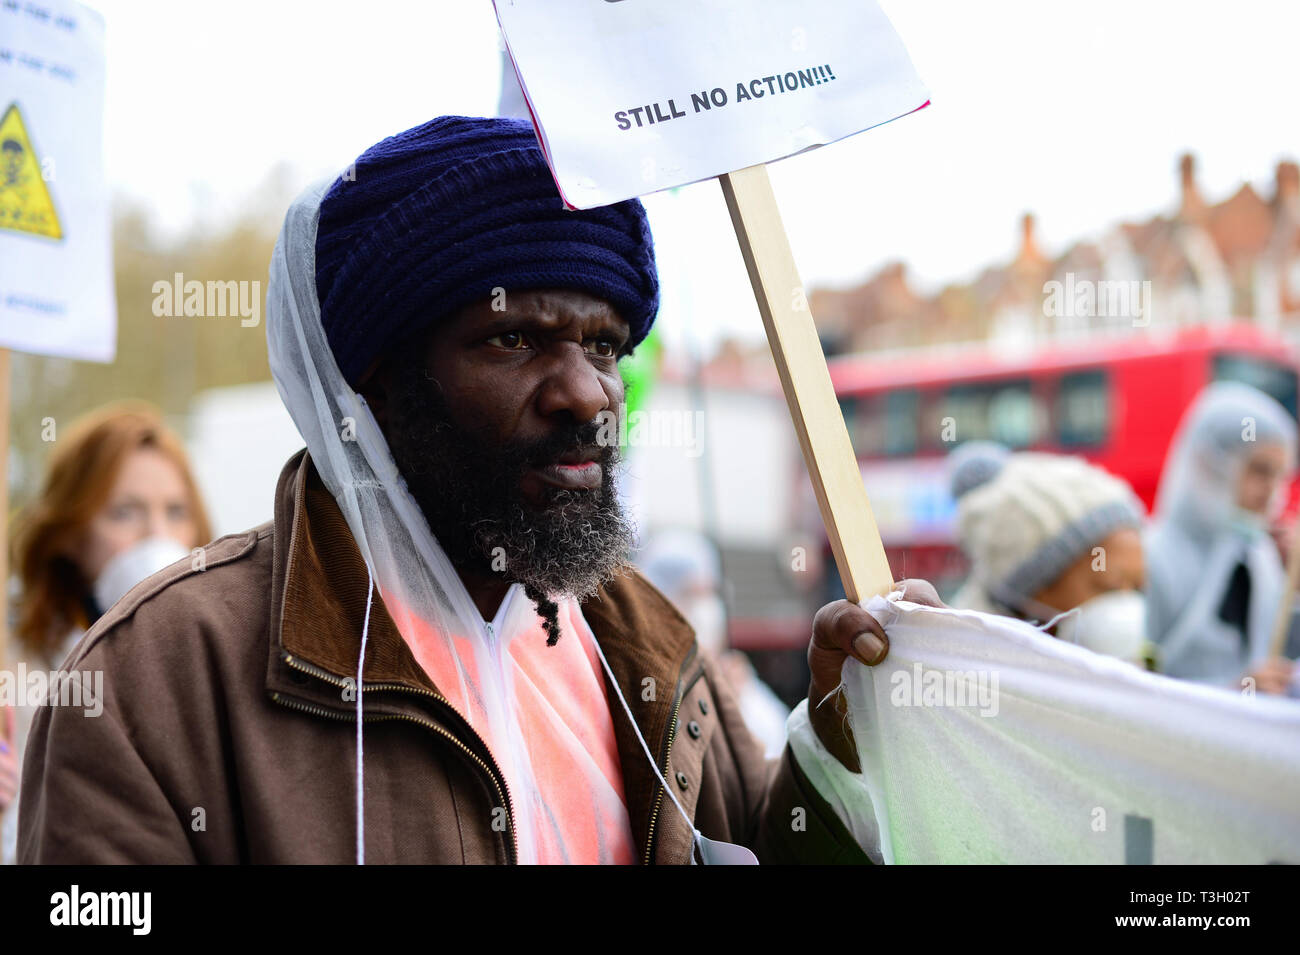 Members of the public take part in a protest accusing authorities of lying after cancer-causing chemicals were found in soil close to Grenfell Tower. Stock Photo